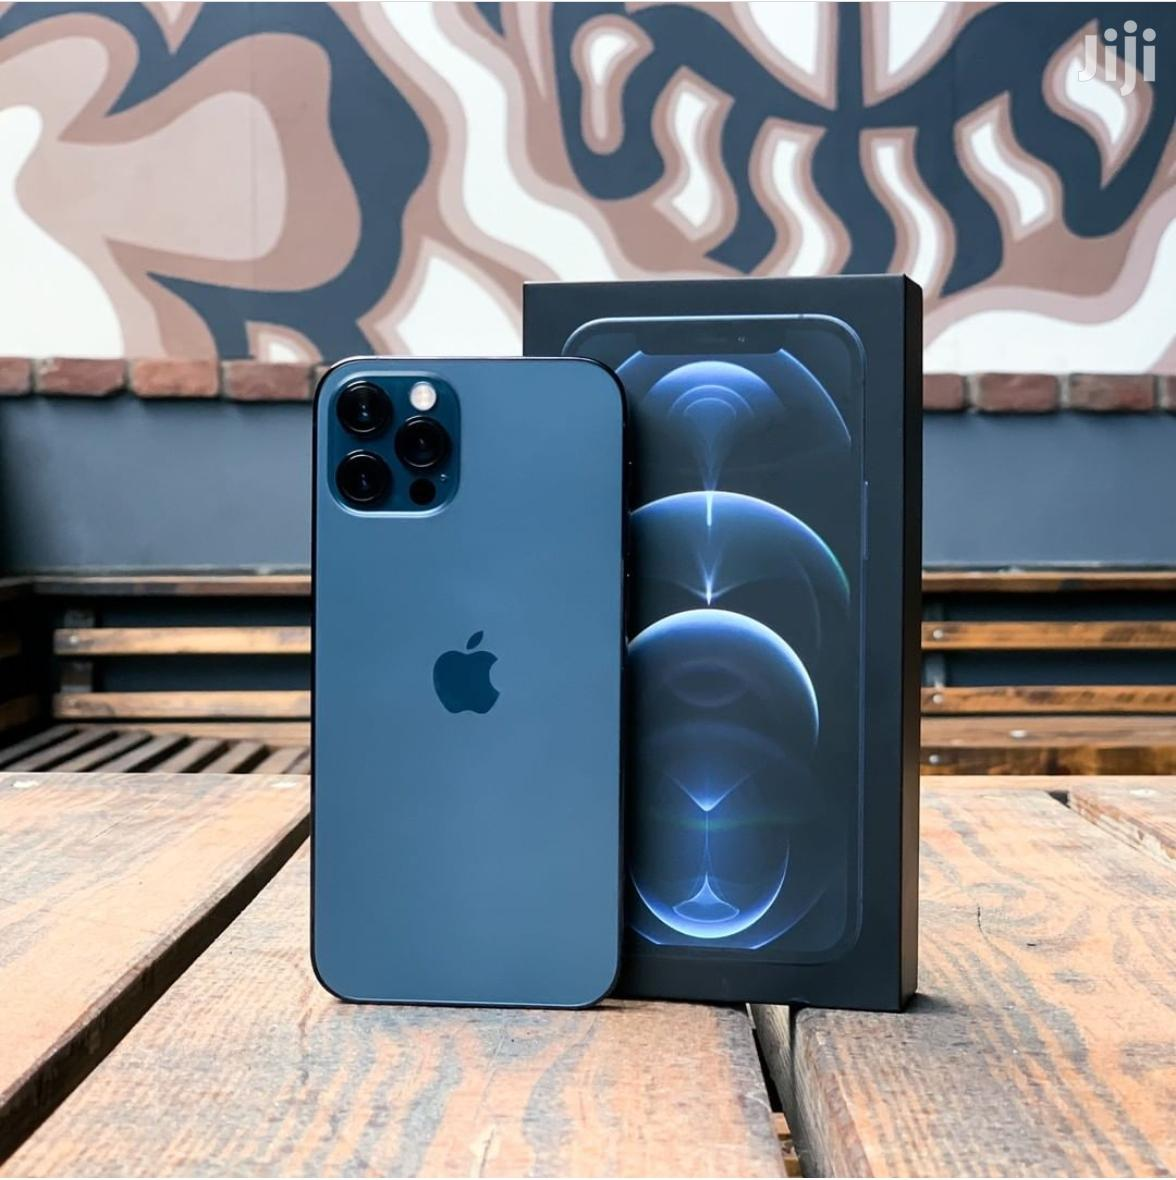 New Apple iPhone 12 Pro Max 128GB Black | Mobile Phones for sale in Ilala, Dar es Salaam, Tanzania